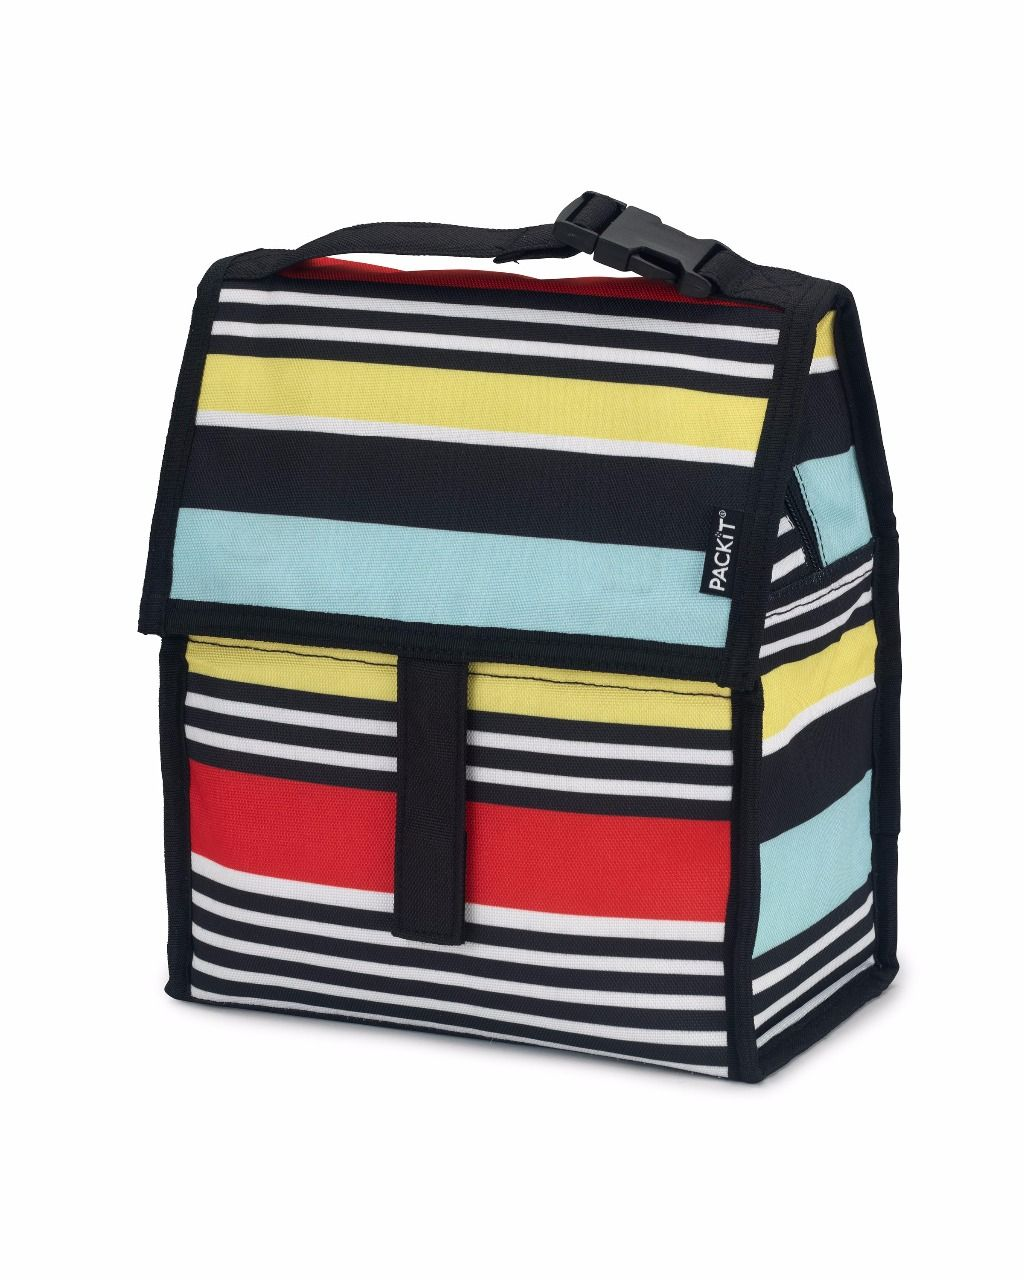 PACKIT Lunch Bag black